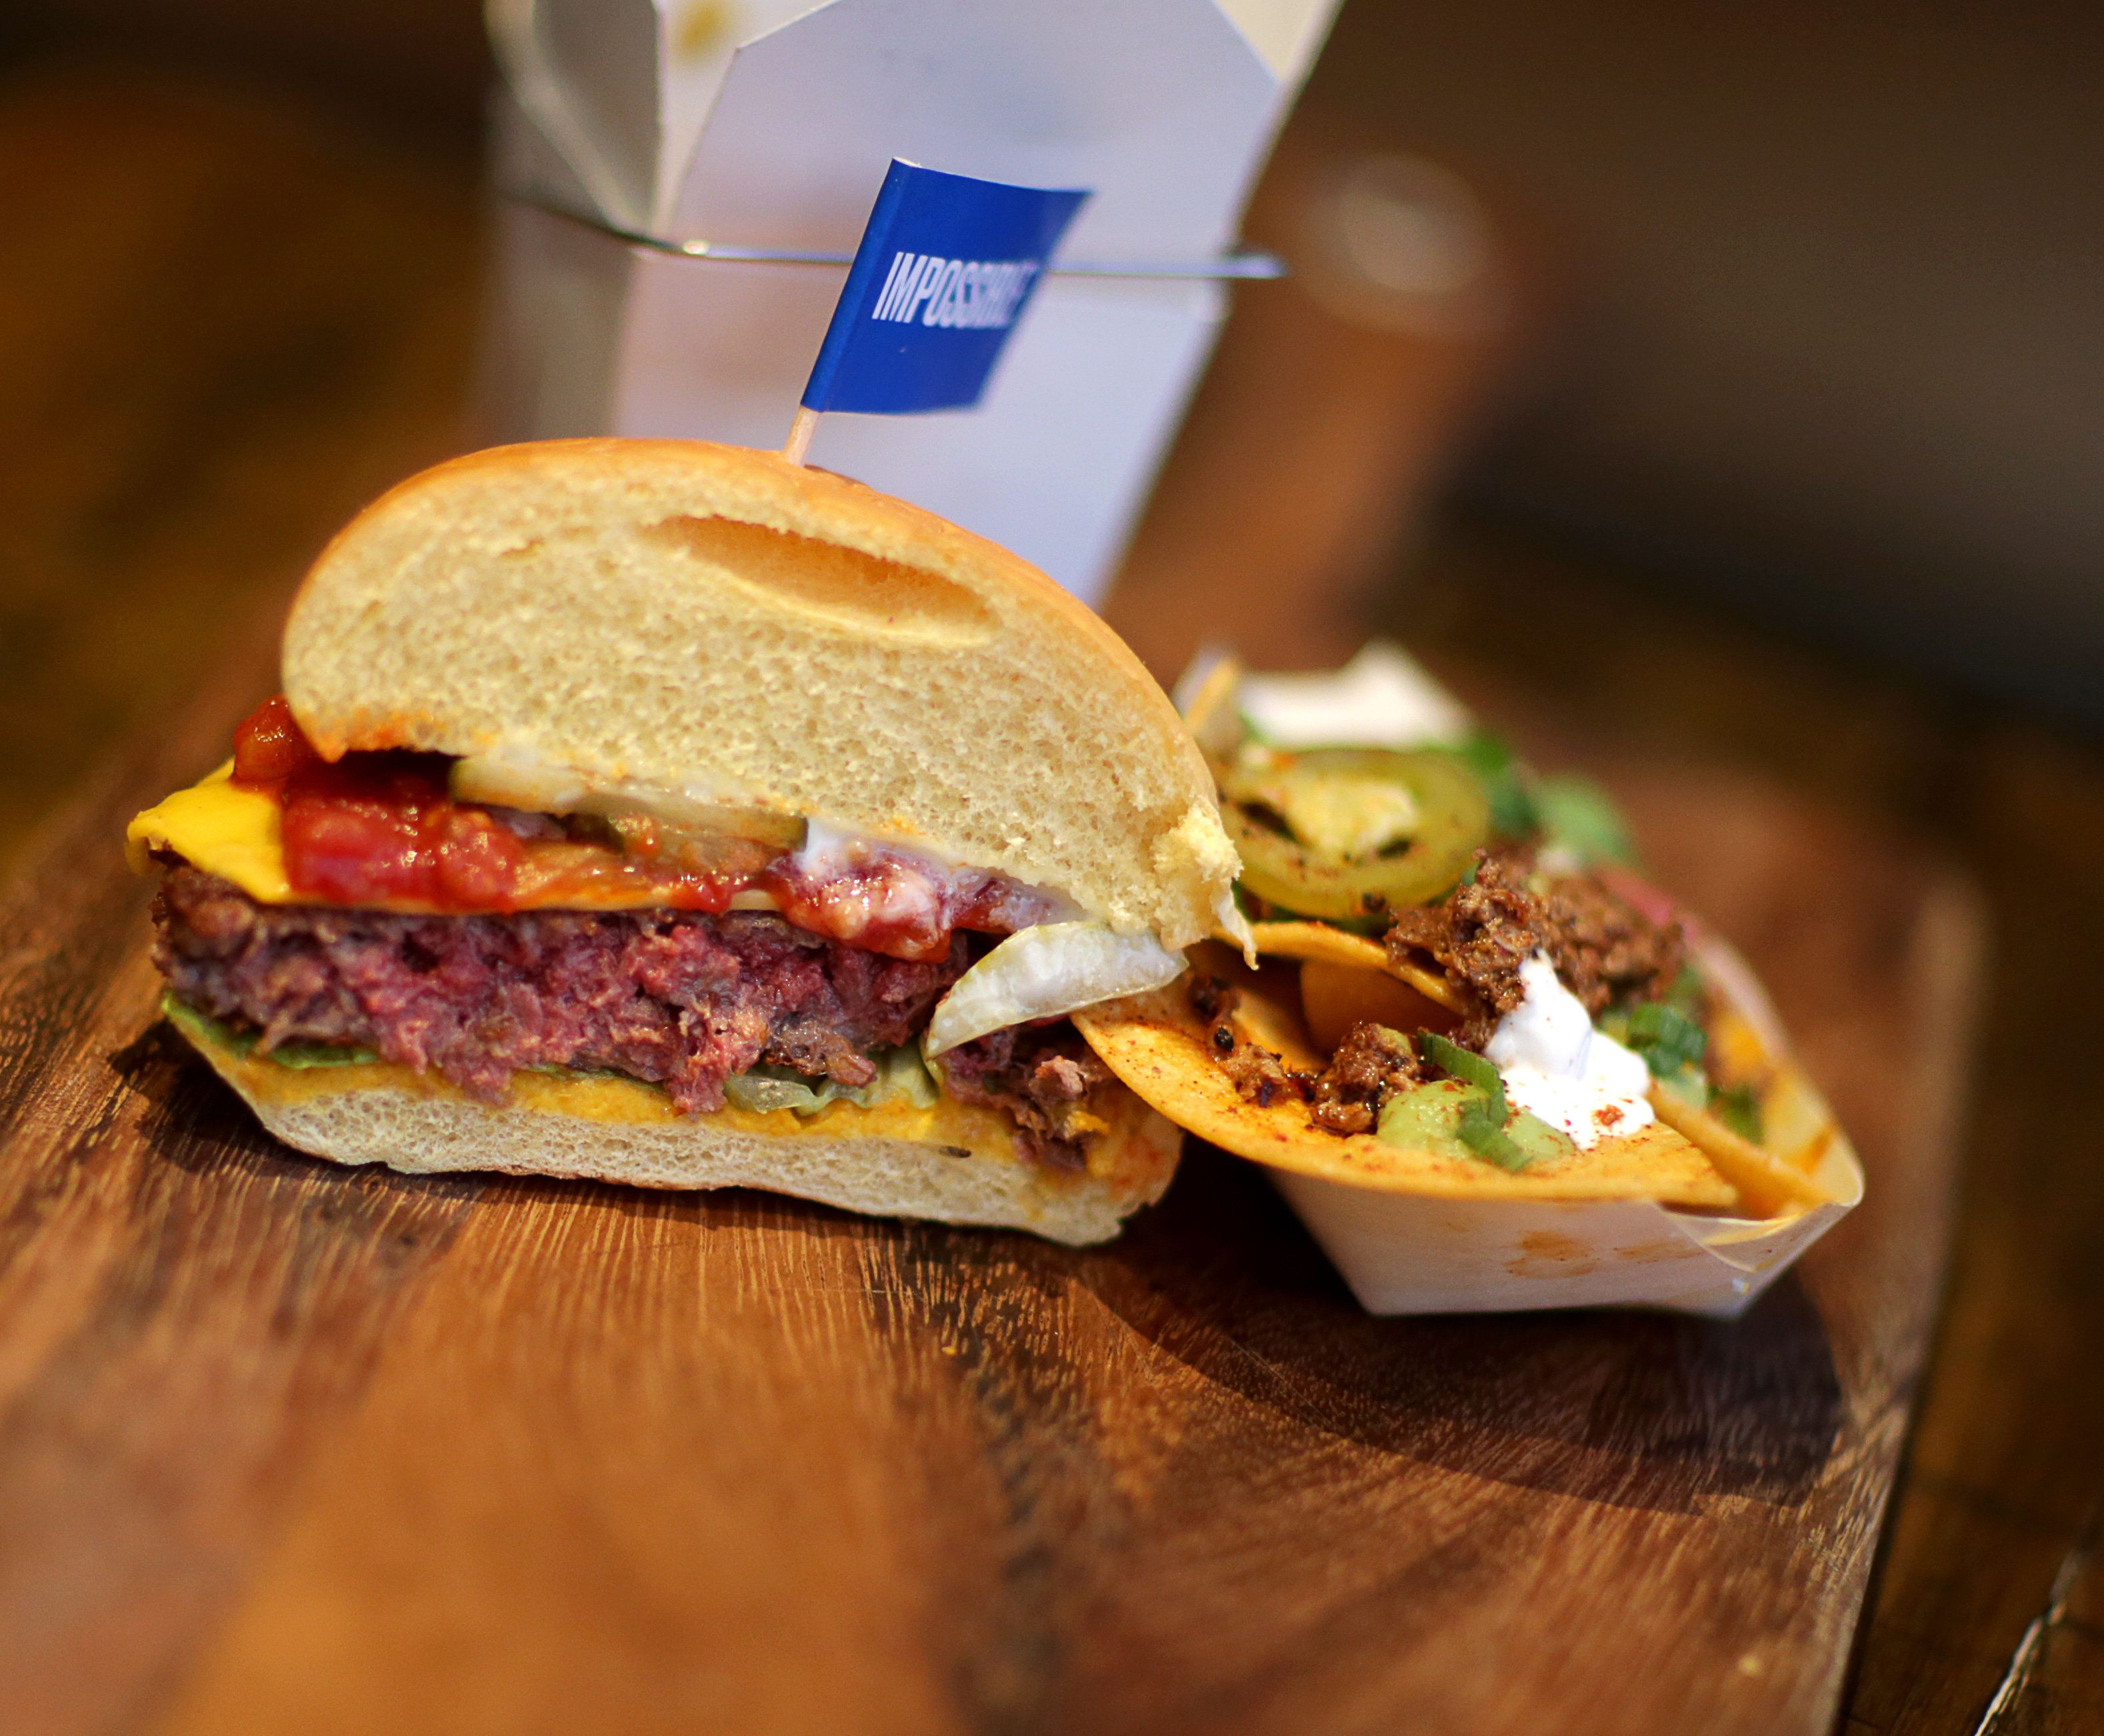 CAMBRIDGE , MA - OCTOBER 19: The meatless Impossible Burger is pictured at Little Donkey in Cambridge, MA on Oct. 19, 2017. (Photo by Jonathan Wiggs/The Boston Globe via Getty Images)